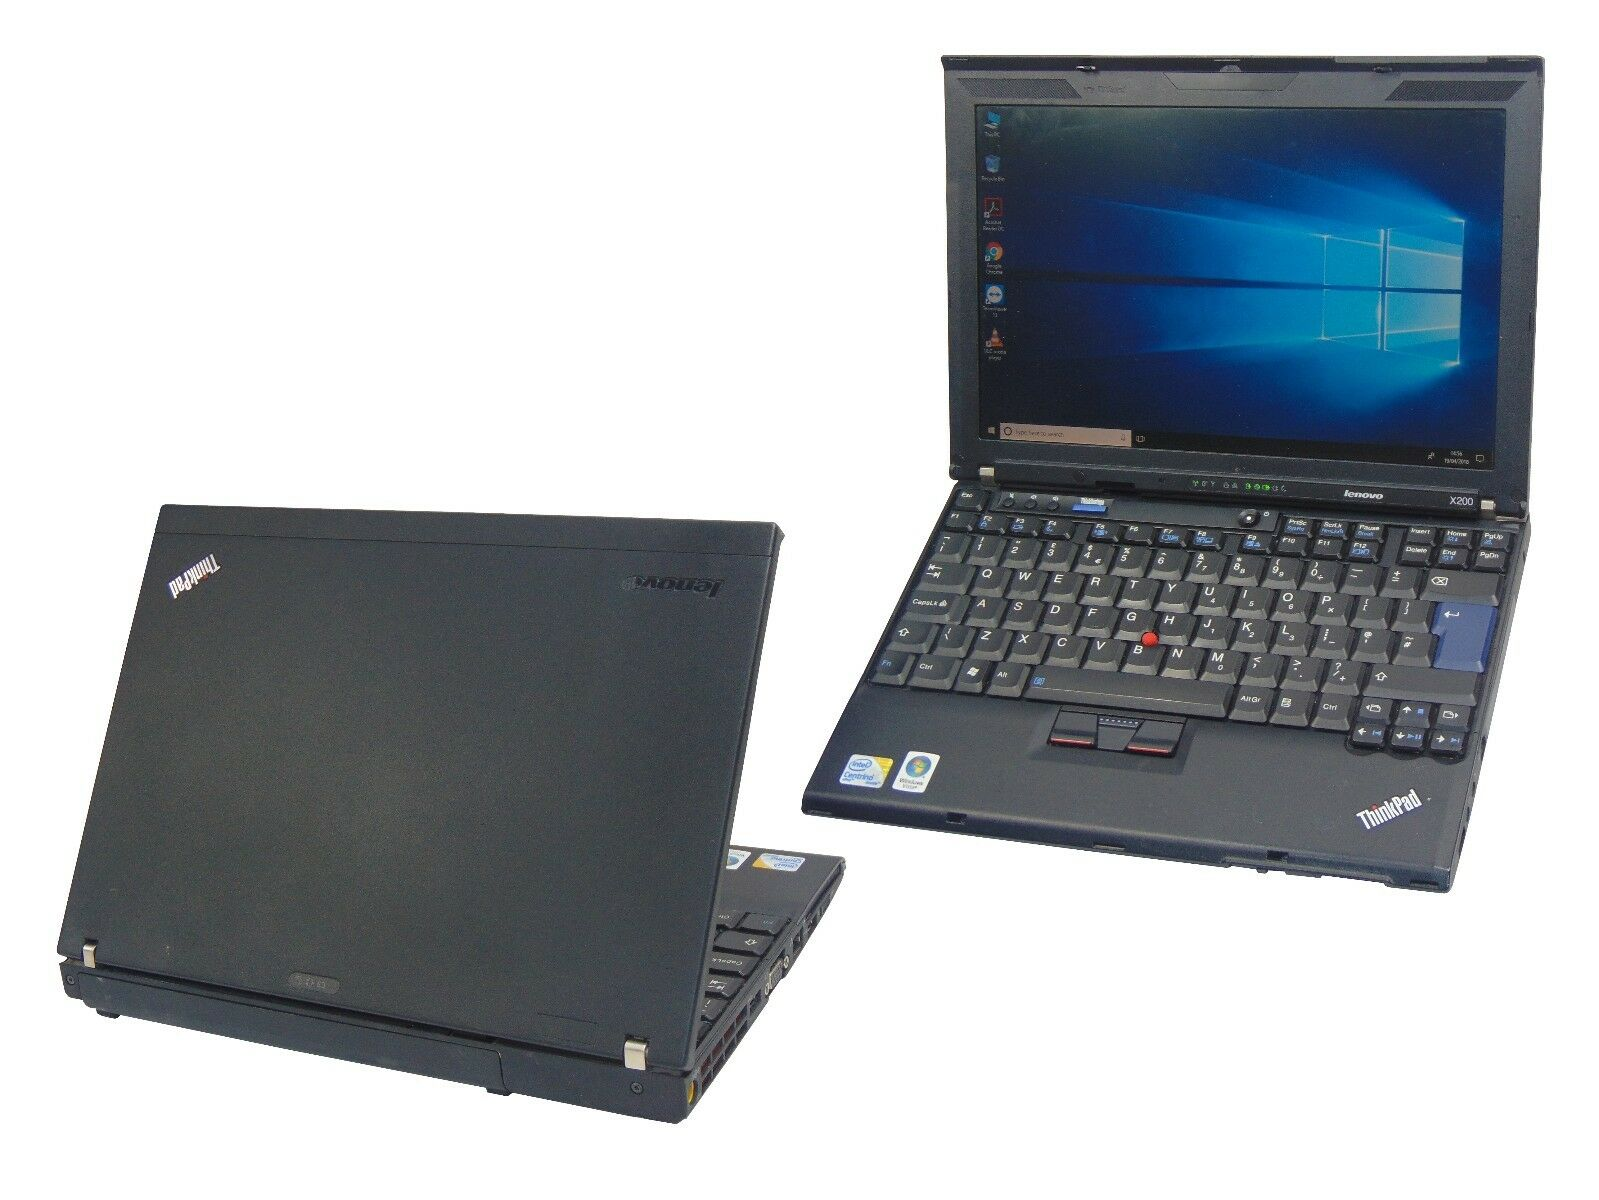 Laptop Windows - Lenovo Thinkpad X200 Core 2 Duo 4GB Ram 160GB HDD Lightweight Windows 10 Laptop